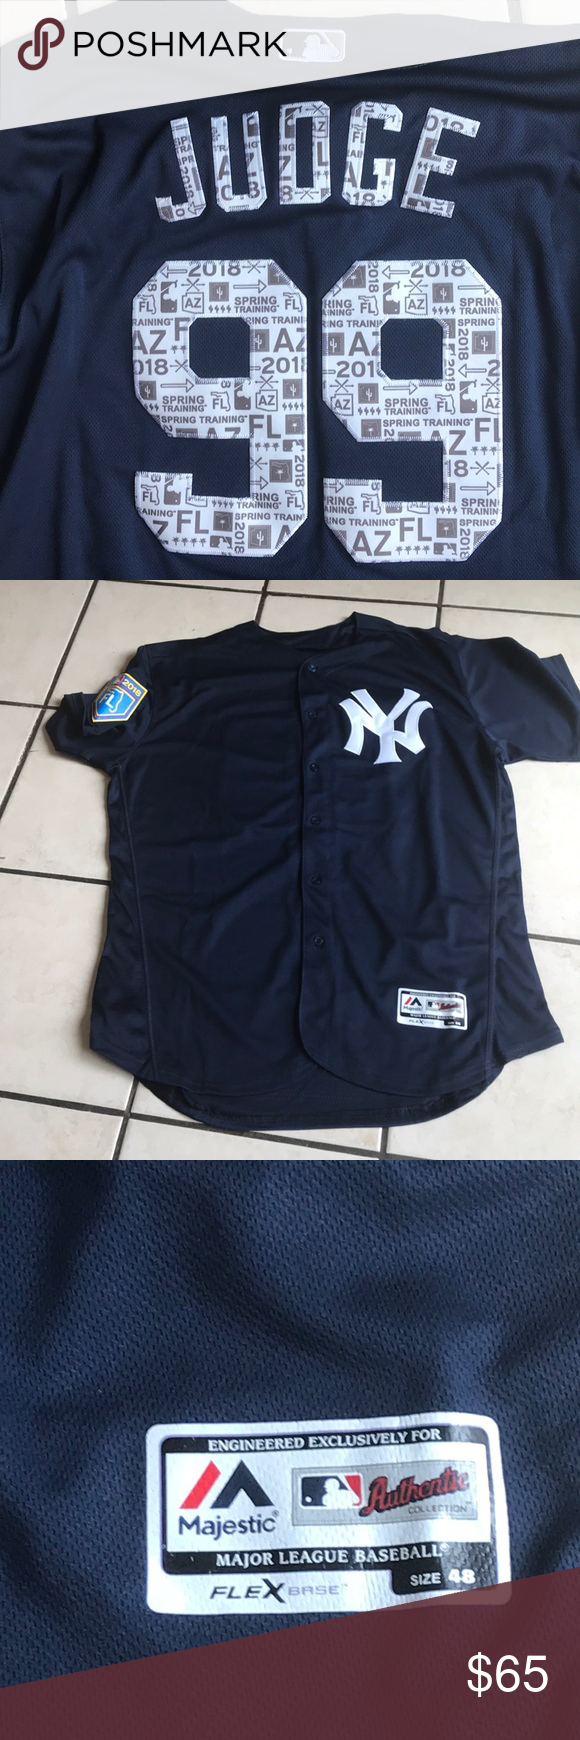 2018 Yankees Spring Training Jersey Aaron Judge- 2018 Spring Training Jersey.  Majestic Flexbase XL Majestic Other 650115118d5